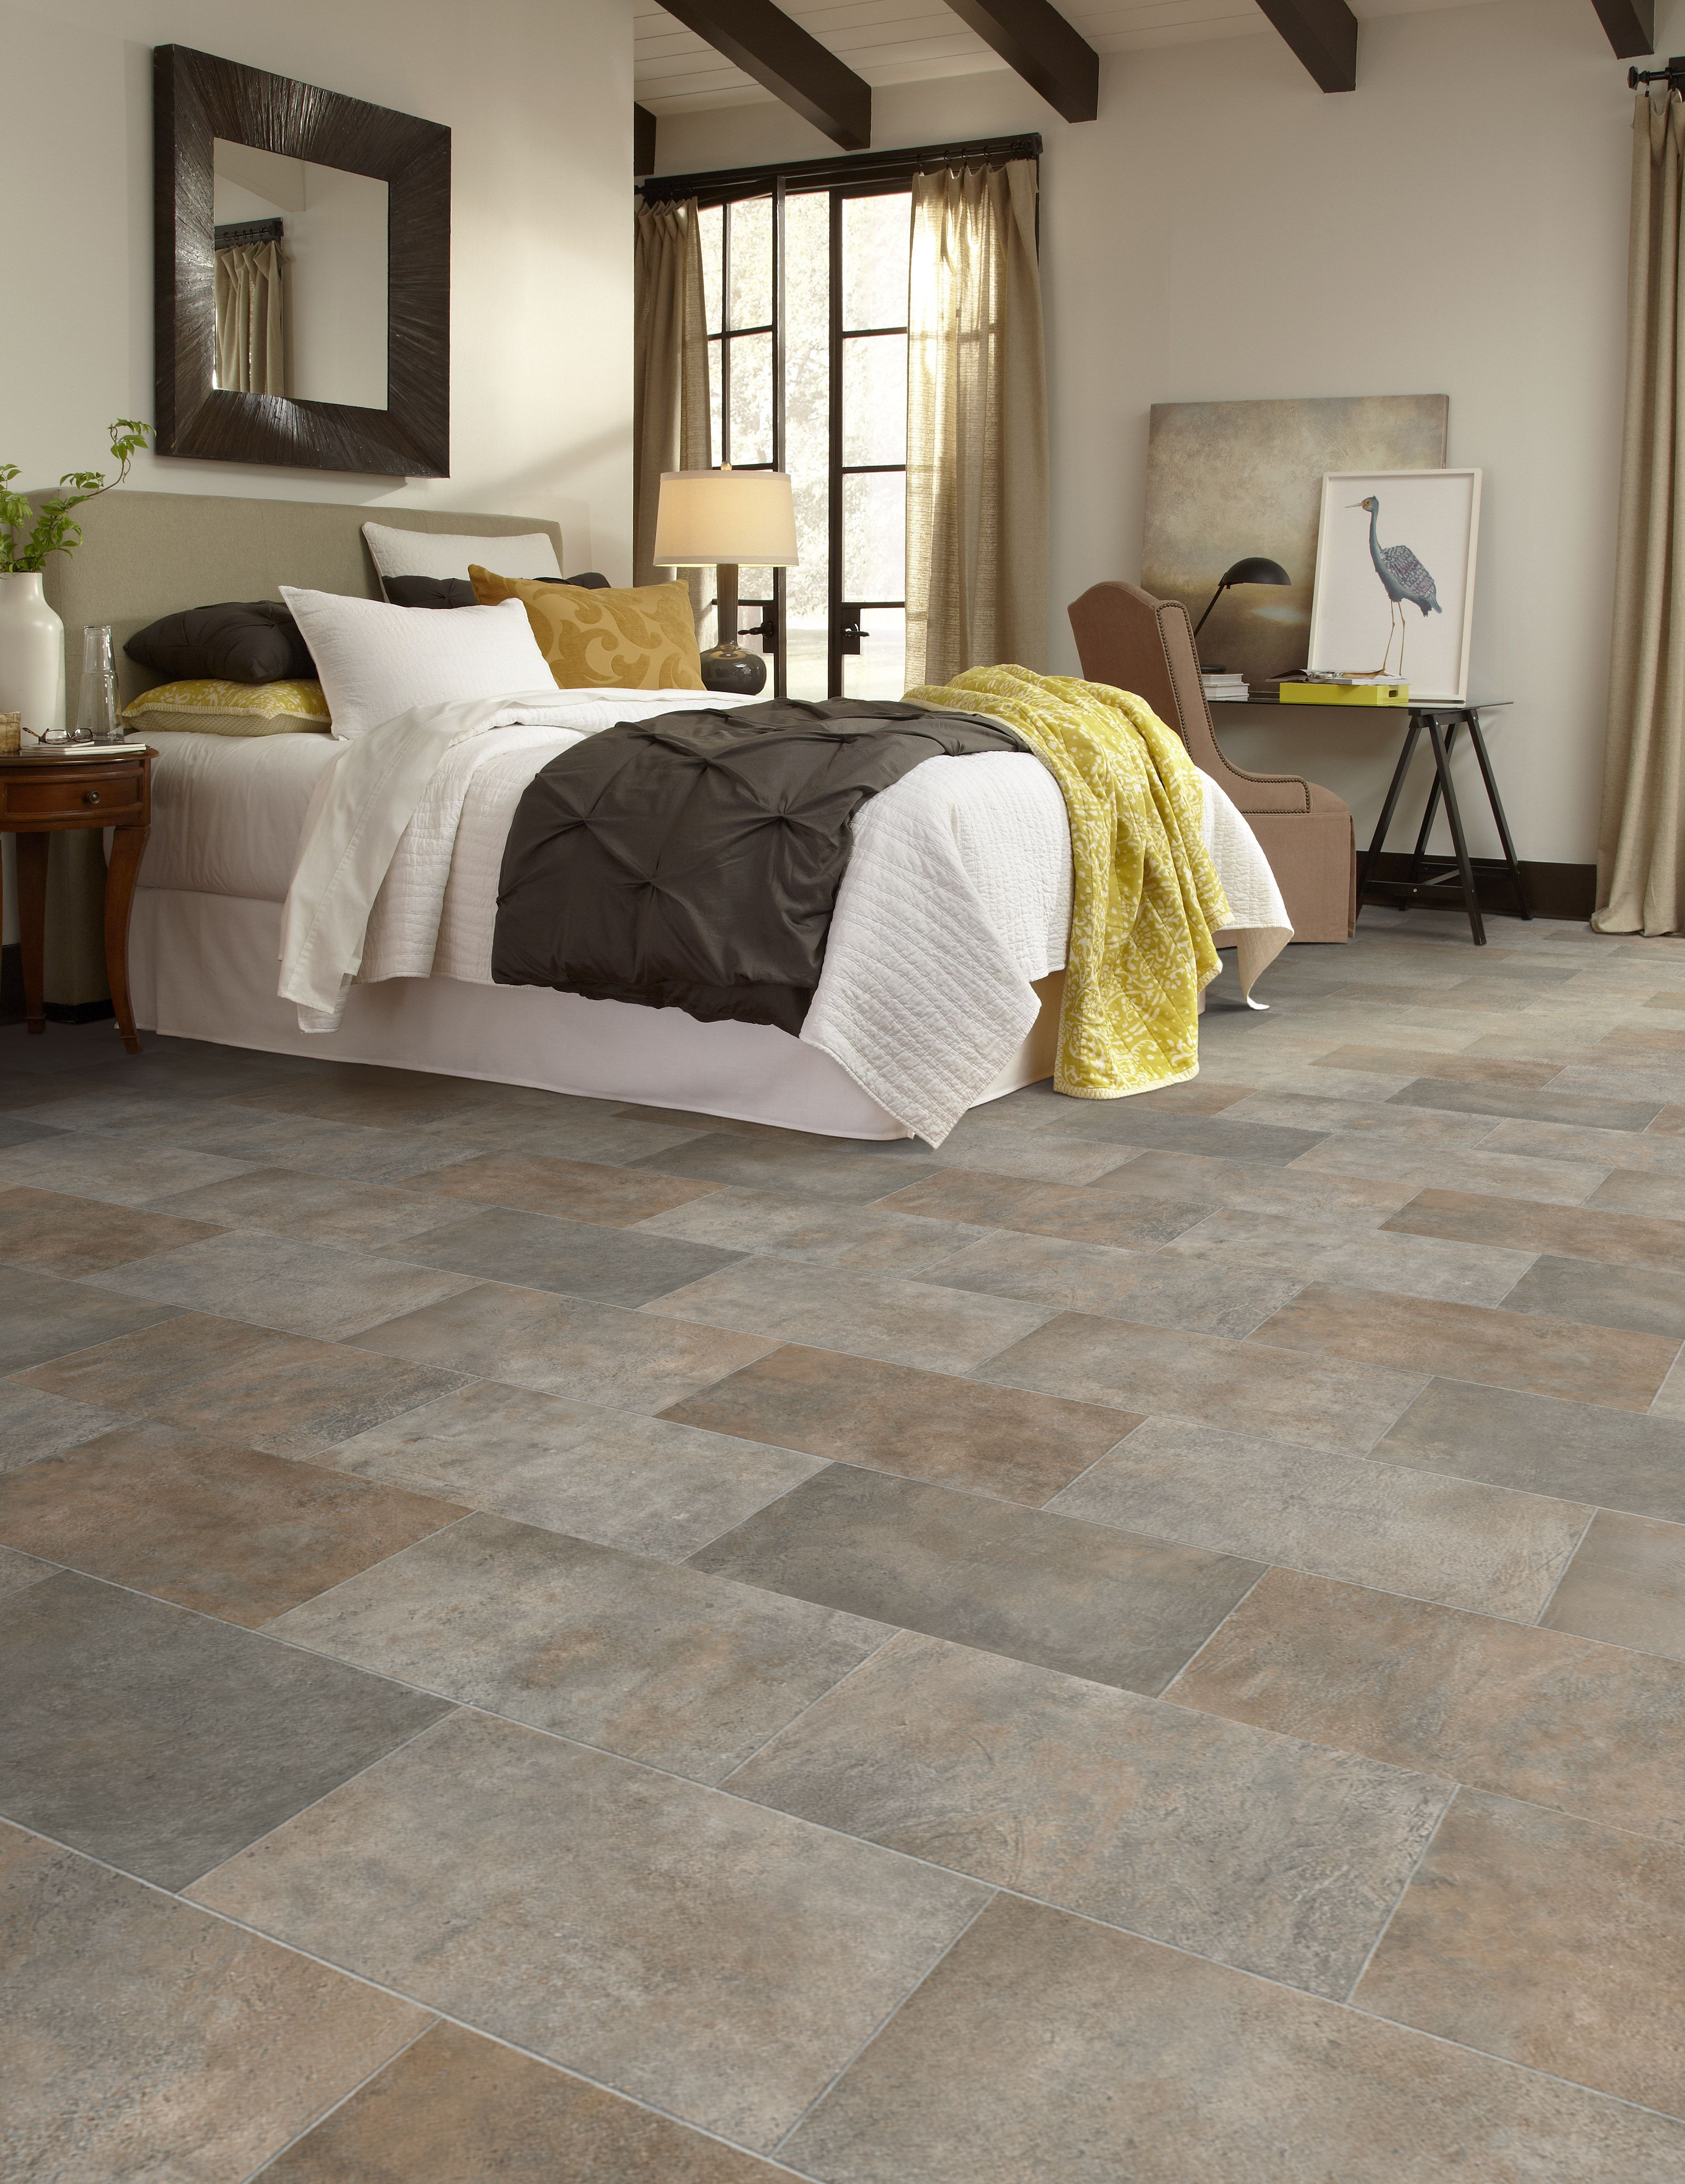 Luxurious Stone Floors Like Our Naturcor Branford 93 Beautifully Integrates Shades Of Brown And Gray Bedroom Flooring Luxury Vinyl Tile Floor Design